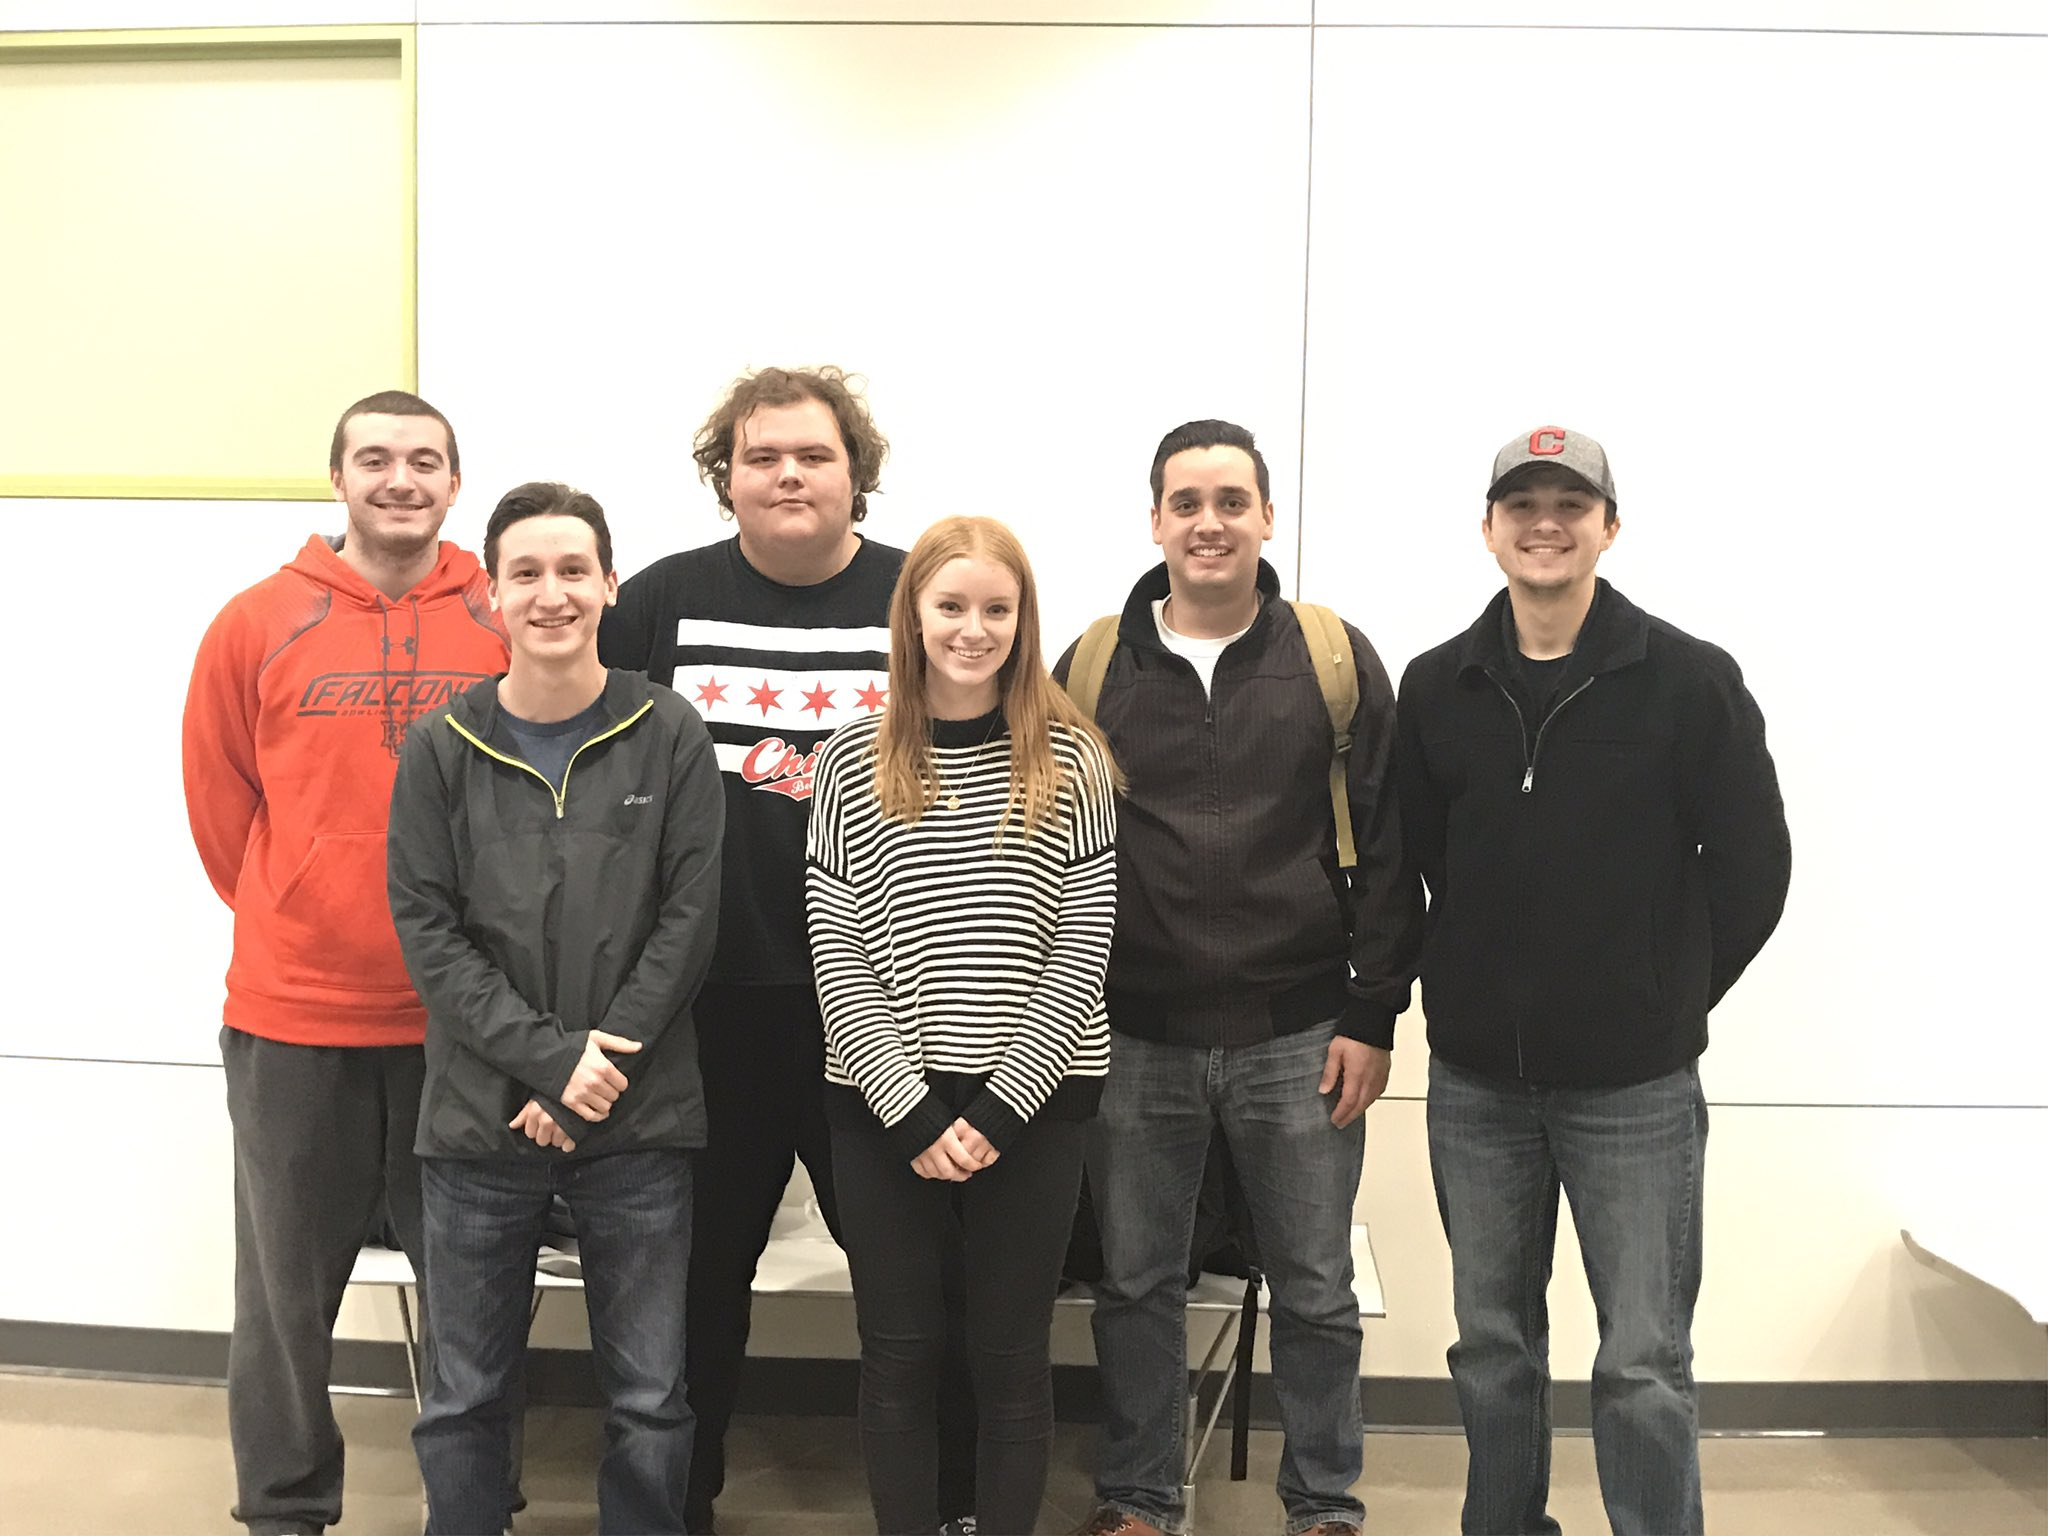 Director: Griffin Olah - Marketing is one of five suggested minors that accompanies the Sport Management major at BGSU. The Marketing Committee is responsible for spreading the word of all SMA events, fundraisers, trips, and meetings as well as promoting the organization, managing several social media accounts, and sharing the experiences of SMA with the university and community.Griffin can be contacted at golah@bgsu.edu